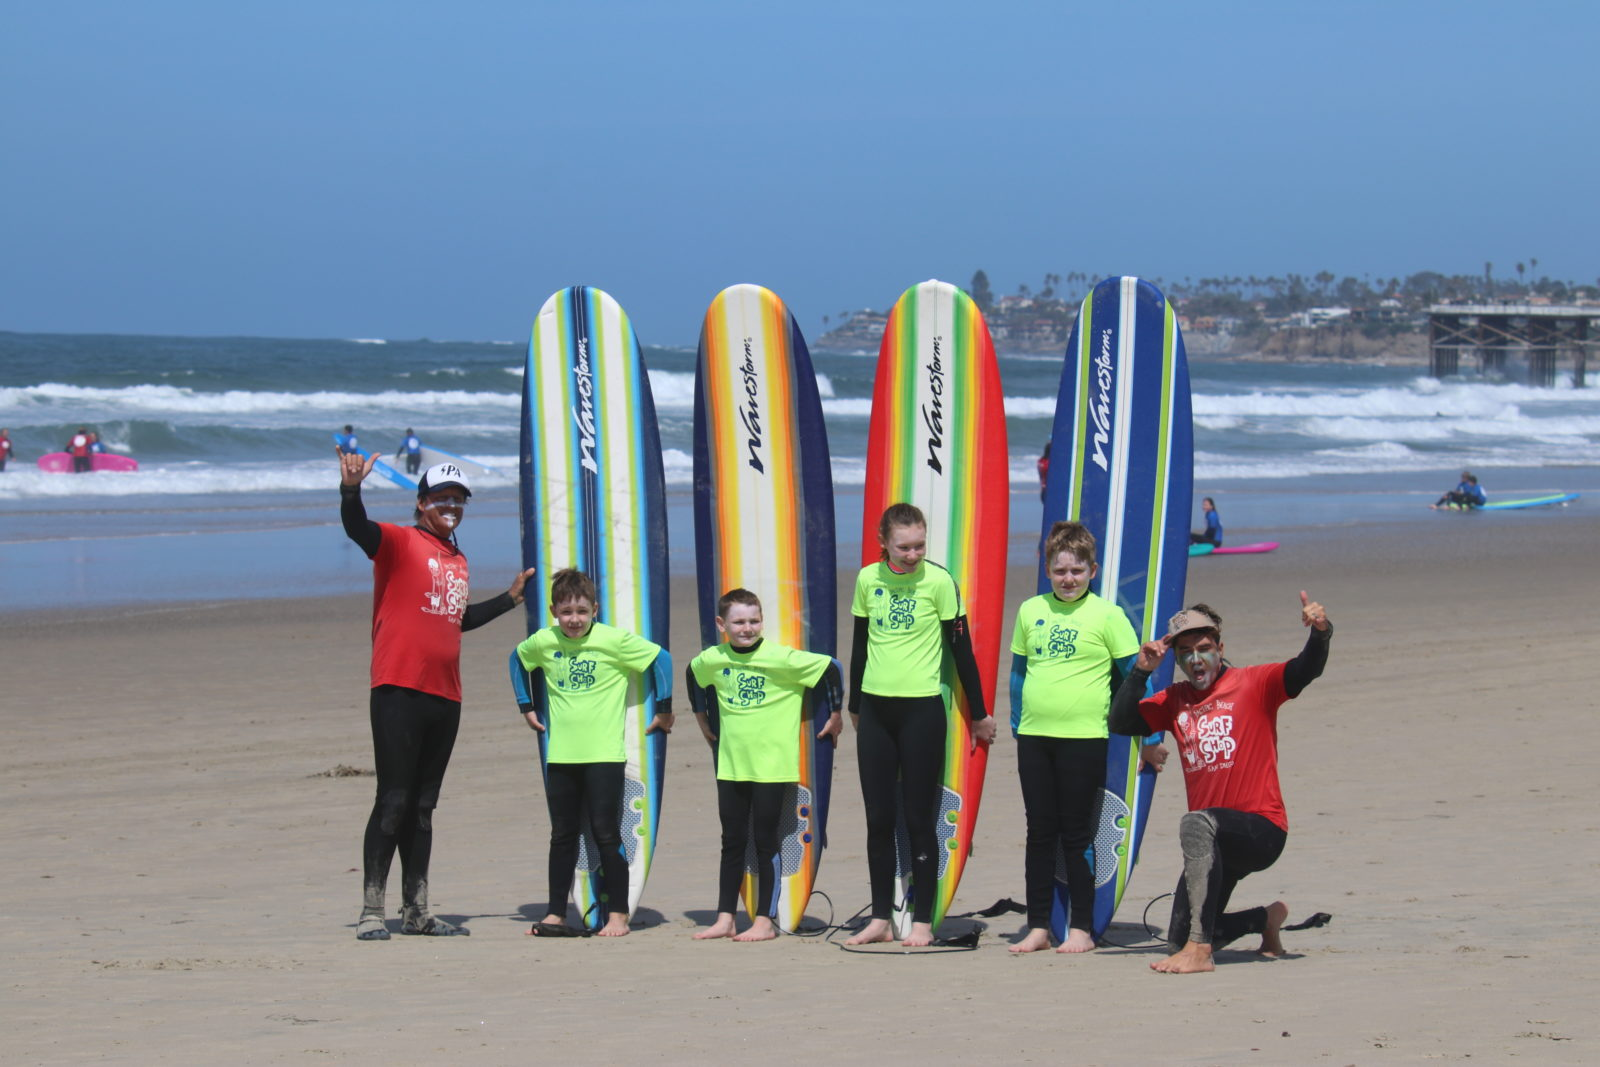 learn to surf, surf lessons san diego, Surf schools near me, Learn to surf near me, california surf school, surf lessons in san diego, girls surf camp, surf camp san diego, learn to surf san diego, surfing lessons in san diego, overnight surf camp, california surf camp, private surf lessons, southern california surf camps, Surfboarders, surfing boards, girl surf camps, surf classes, surf etiquette, surf lesson california, bicycle rental san diego, etiquette school, pre surf, private surfer, surfing in san diego, surf spots mexico, san diego surf, nutrition for surfing, mexico surf, surfing and paddling, surf lessons, bike rental san diego, pacific beach girls, surf lessons southern california, bike rentals san diego, surf groups, surf shops san diego, san diego water sports, ocean beach surf report, massage pacific beach, hawaii surfing camp, surf table, paddle board lessons san diego, oahu surf camps, surfboards girls, toes on the nose surf school, surfer hotel pacific beach, best surf spots in san diego, california board shorts, surf girls, women surf retreats, surf report oceanside, best surf in san diego, best surf spots in san diego, surf spots in san diego, surf spots san diego, kite surfing lessons san diego, san diego surfing spots, hawaii surf camp, surfing in san diego, california surf school, academy in Ocean Beach SD, Ocean Beach SD academy, surfboard types, most popular surfboards, best San Diego 92109 academy, education San Diego CA Ocean Beach, best type of surfboard for beginners, best 92109 academy, education Ocean Beach San Diego